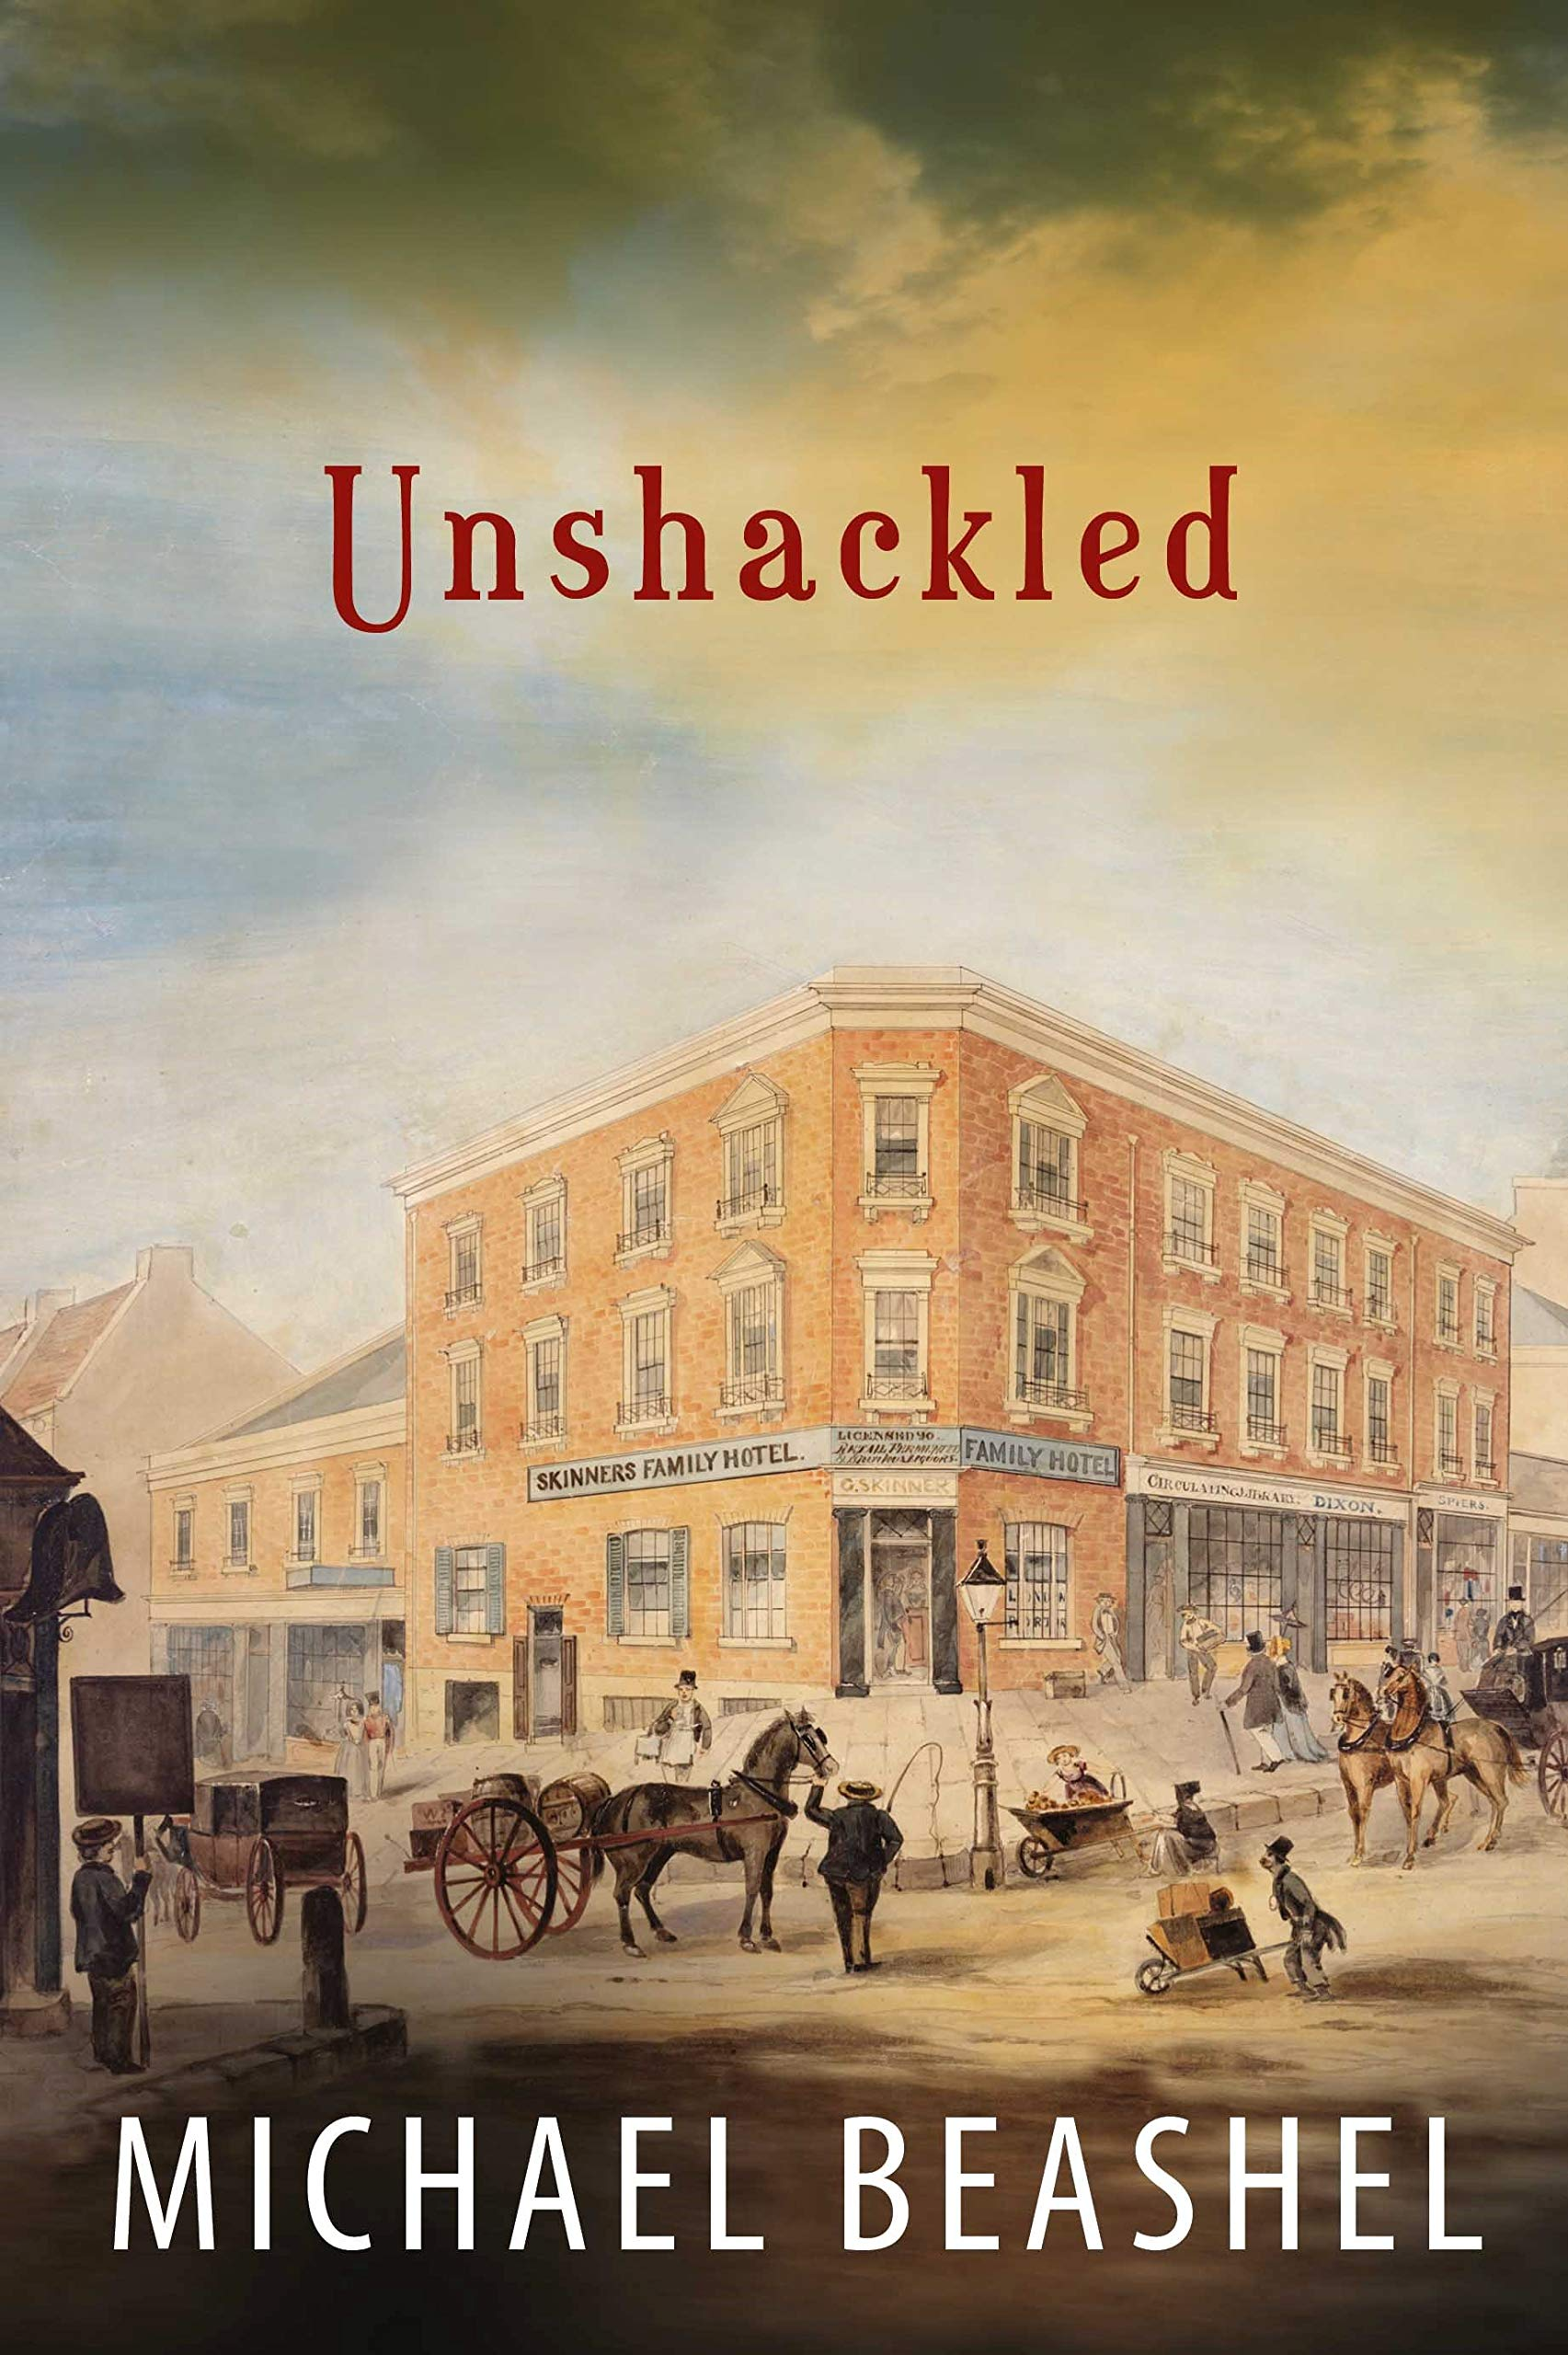 Unshackled: Australian Historical Fiction Novel